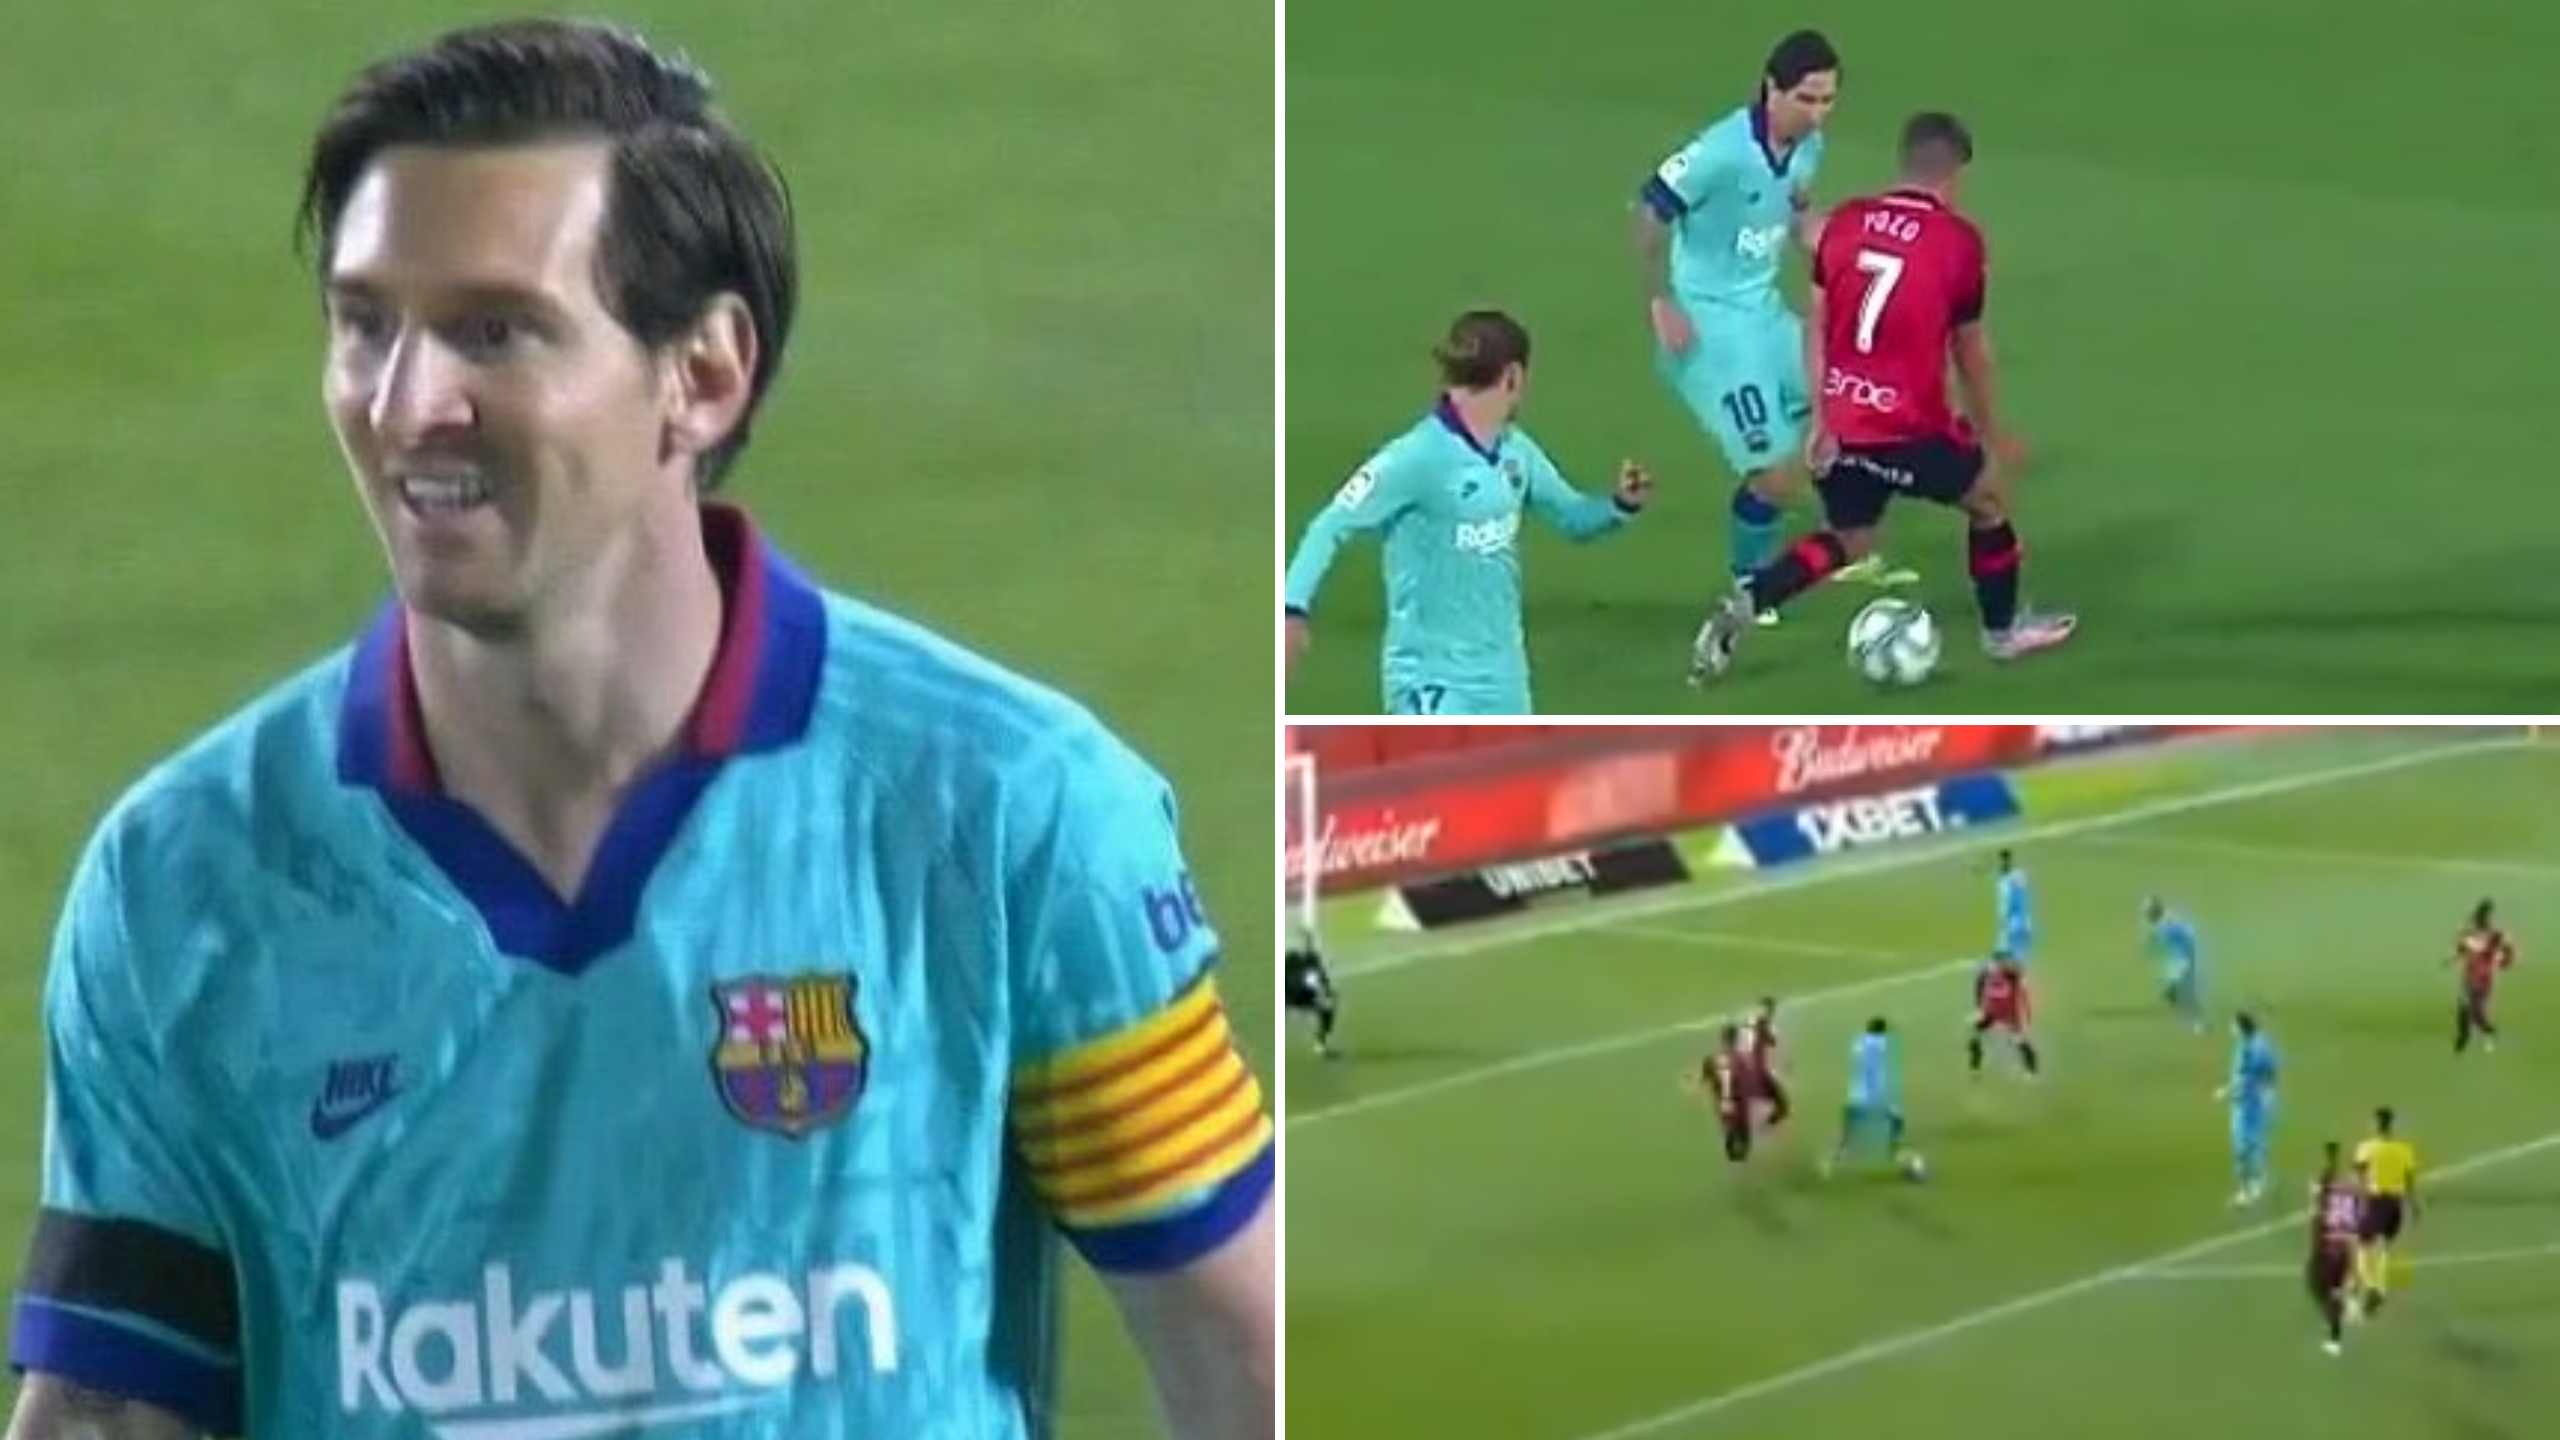 Lionel Messi S Individual Highlights Vs Mallorca Prove He Is More Motivated Than Ever Sportbible